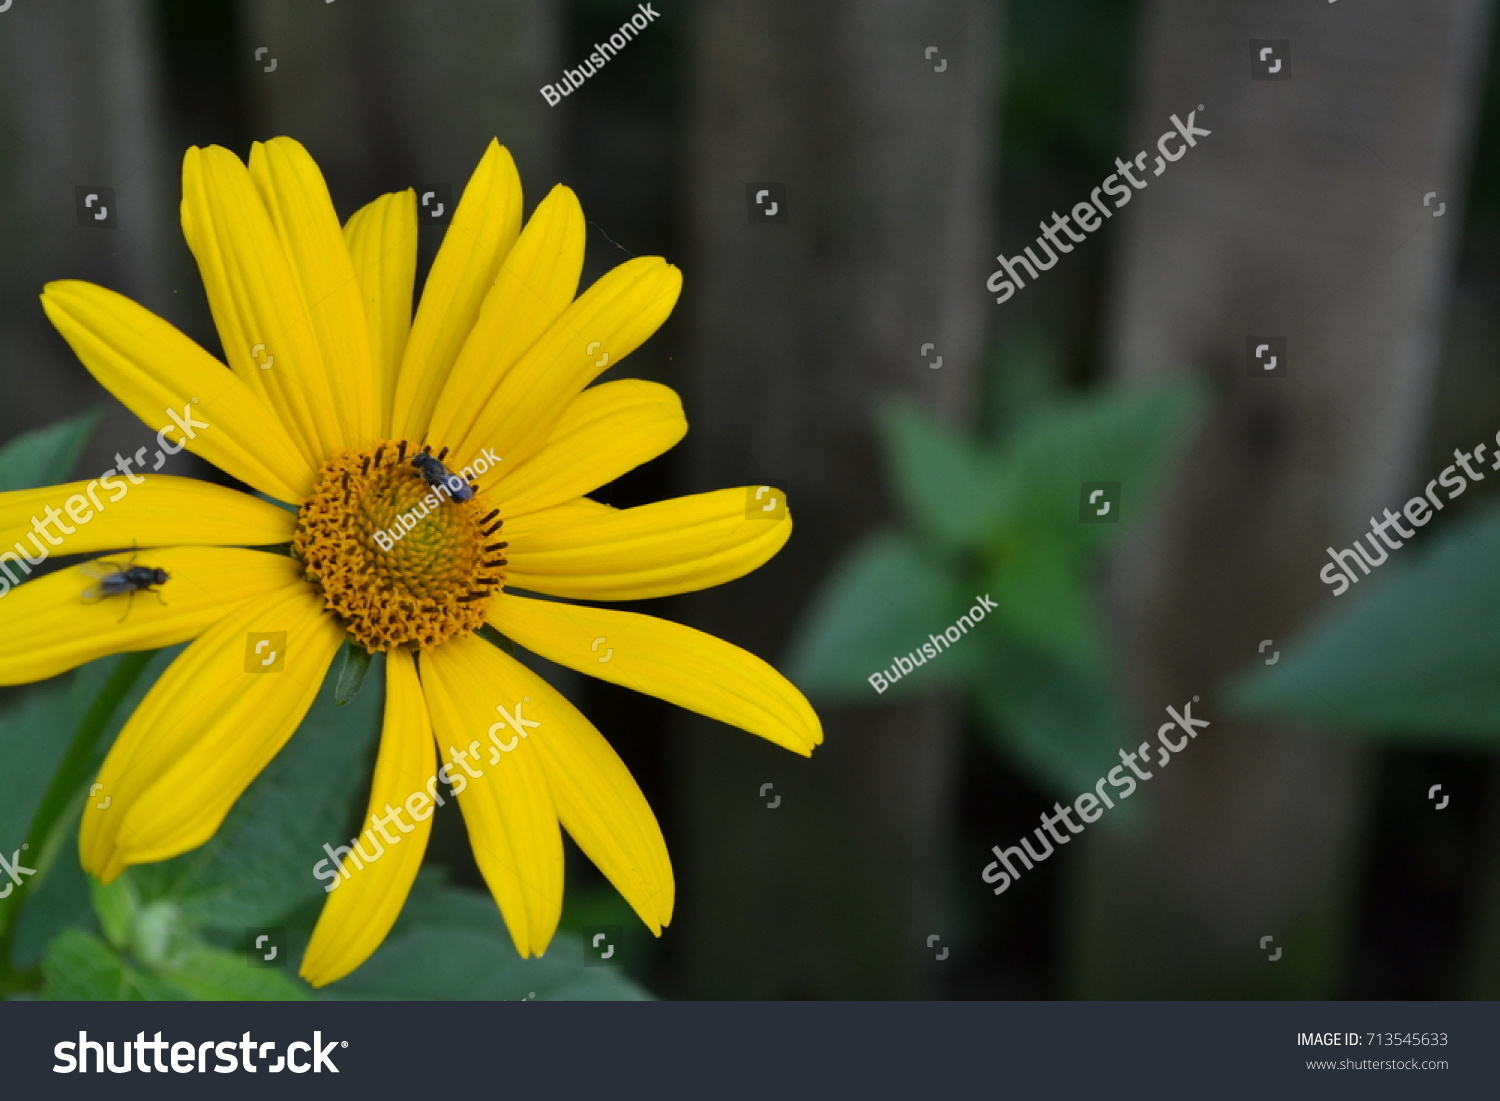 Heliopsis helianthoides perennial similar daisy tall stock photo heliopsis helianthoides perennial similar to the daisy tall flowers flowers are yellow izmirmasajfo Choice Image